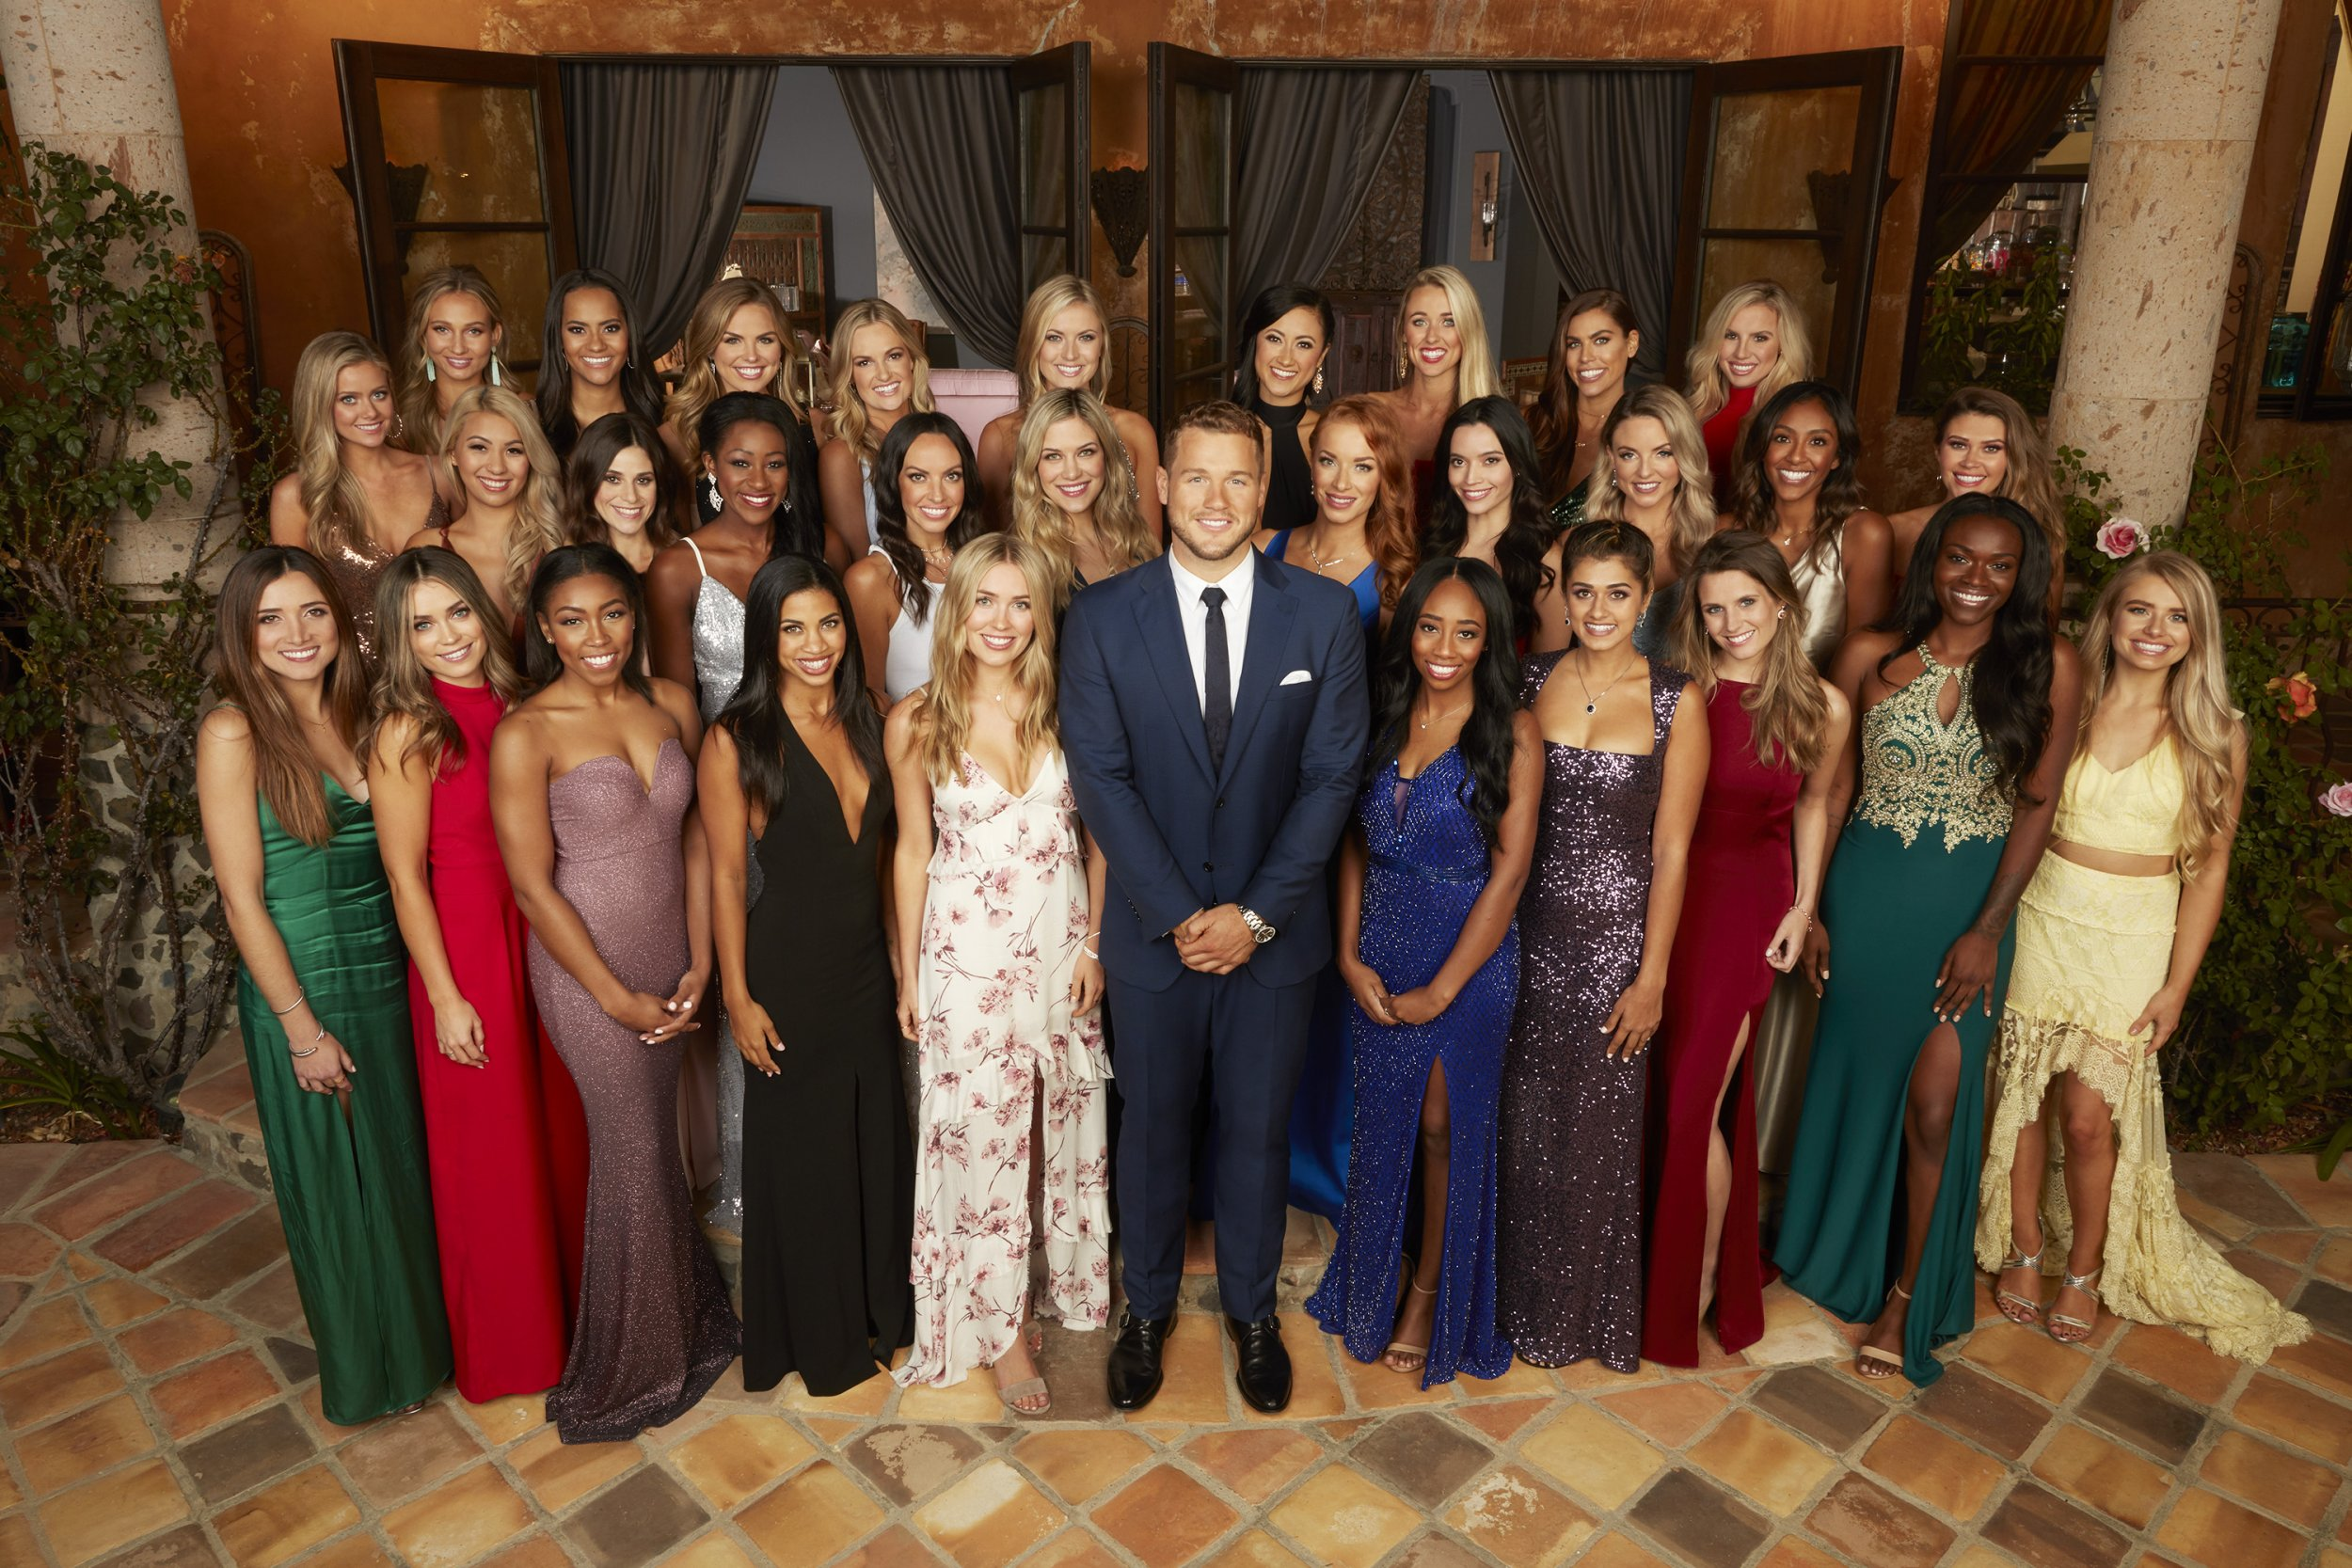 Bachelor Season 23 Cast with Colton Underwood